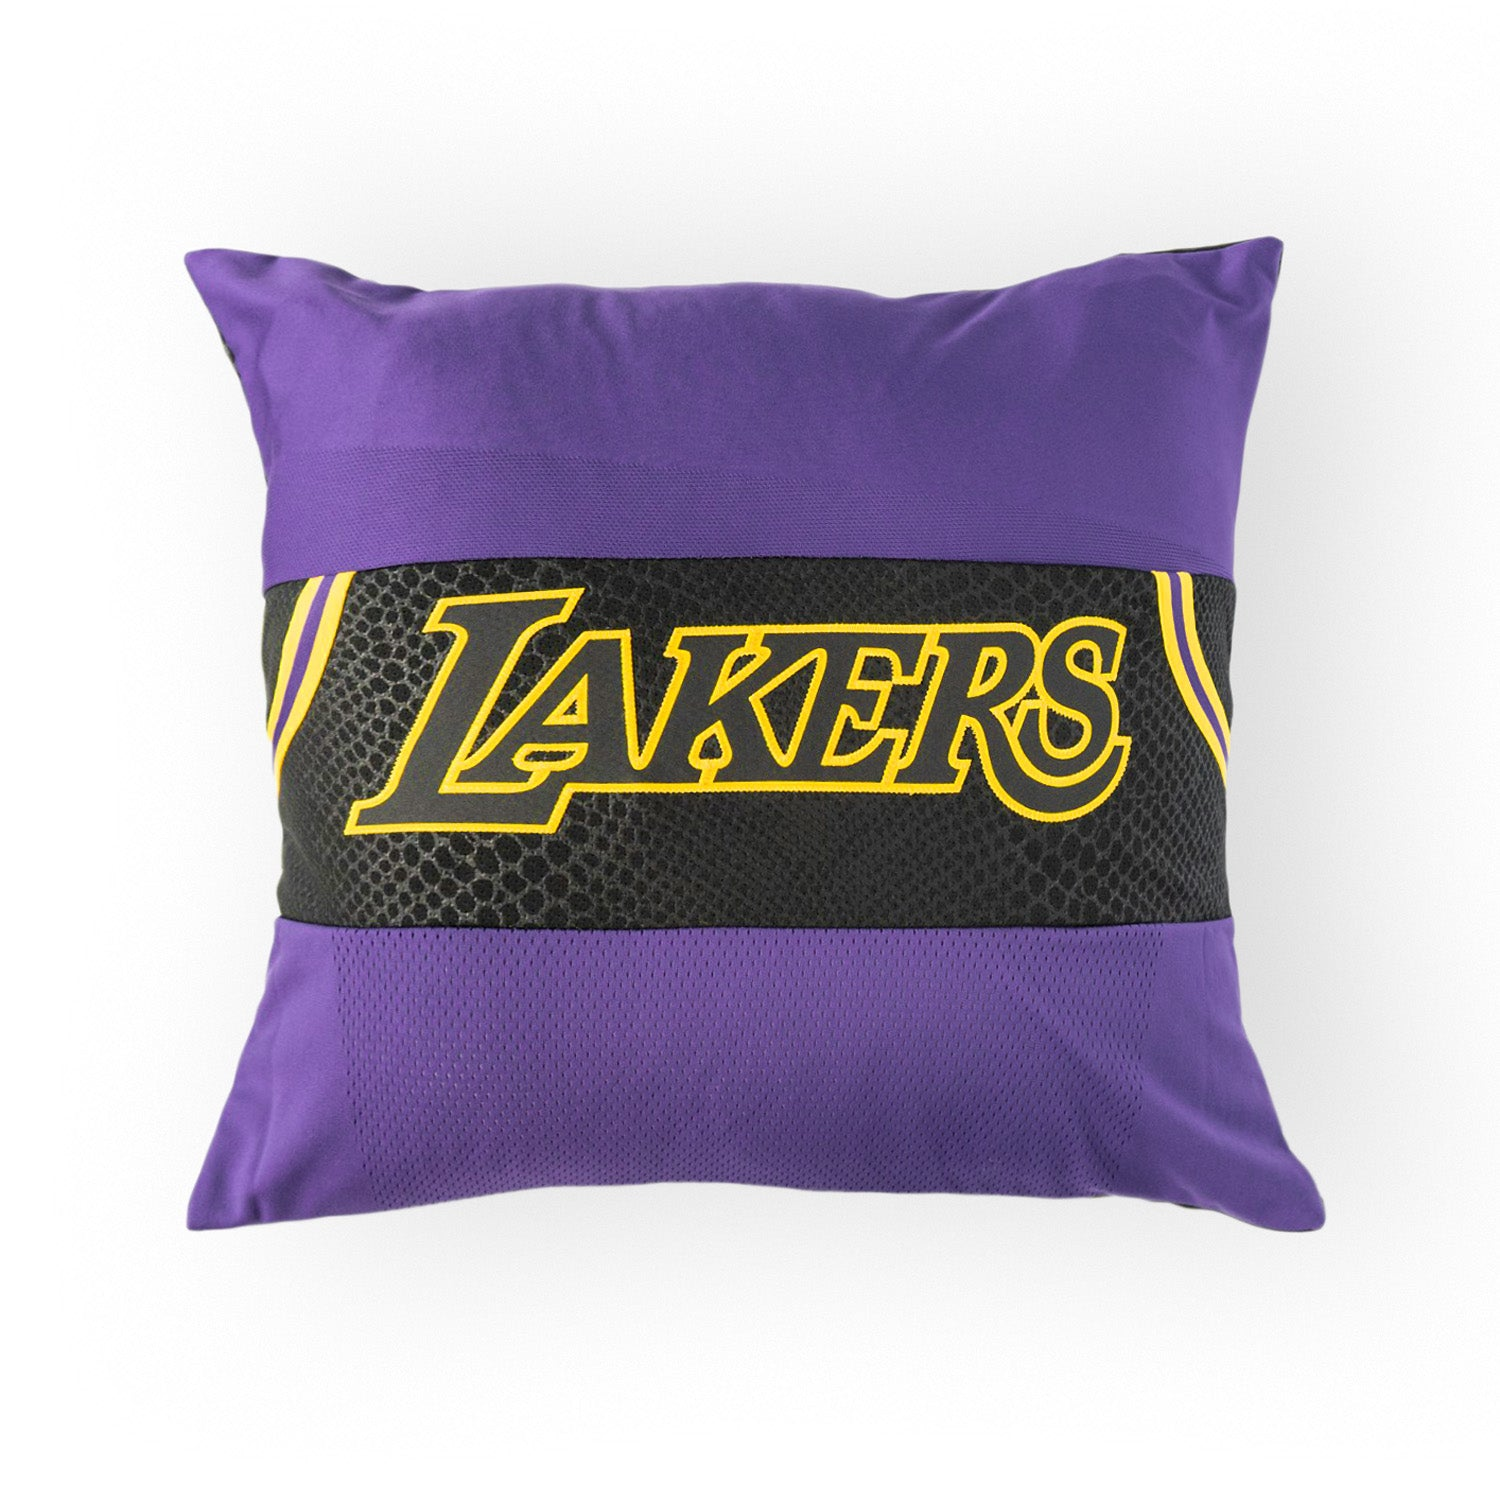 Los Angeles Lakers Upcycled Jersey Pillow Accessories - Looptworks